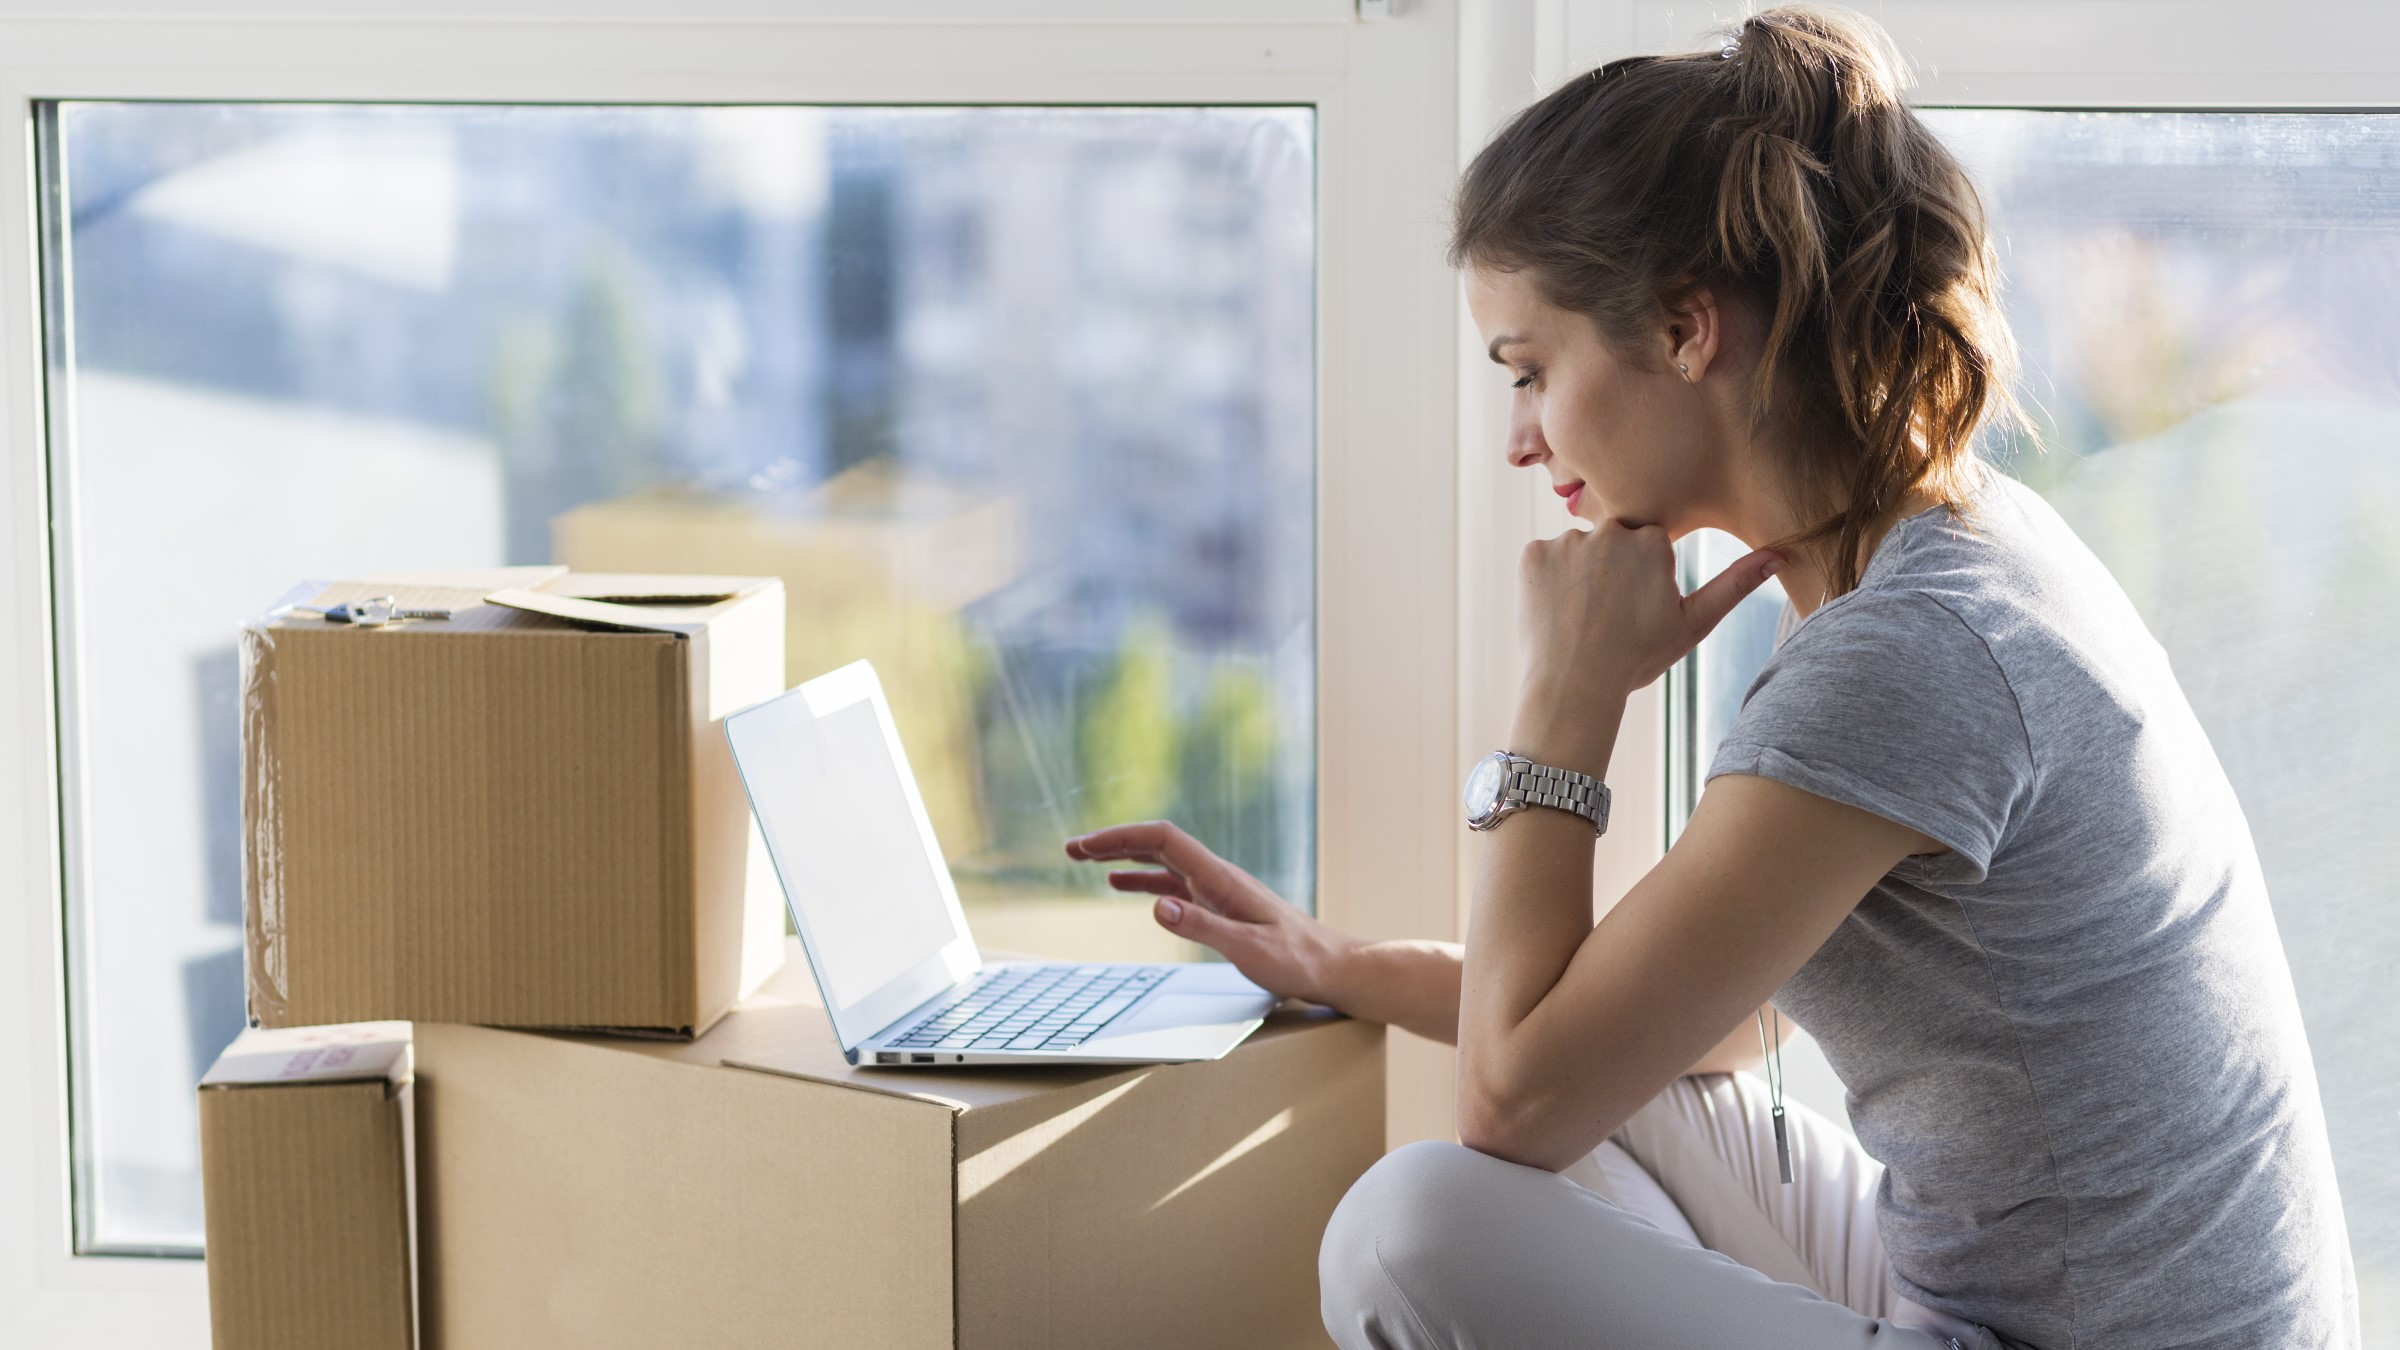 Woman works on computer at moving boxes